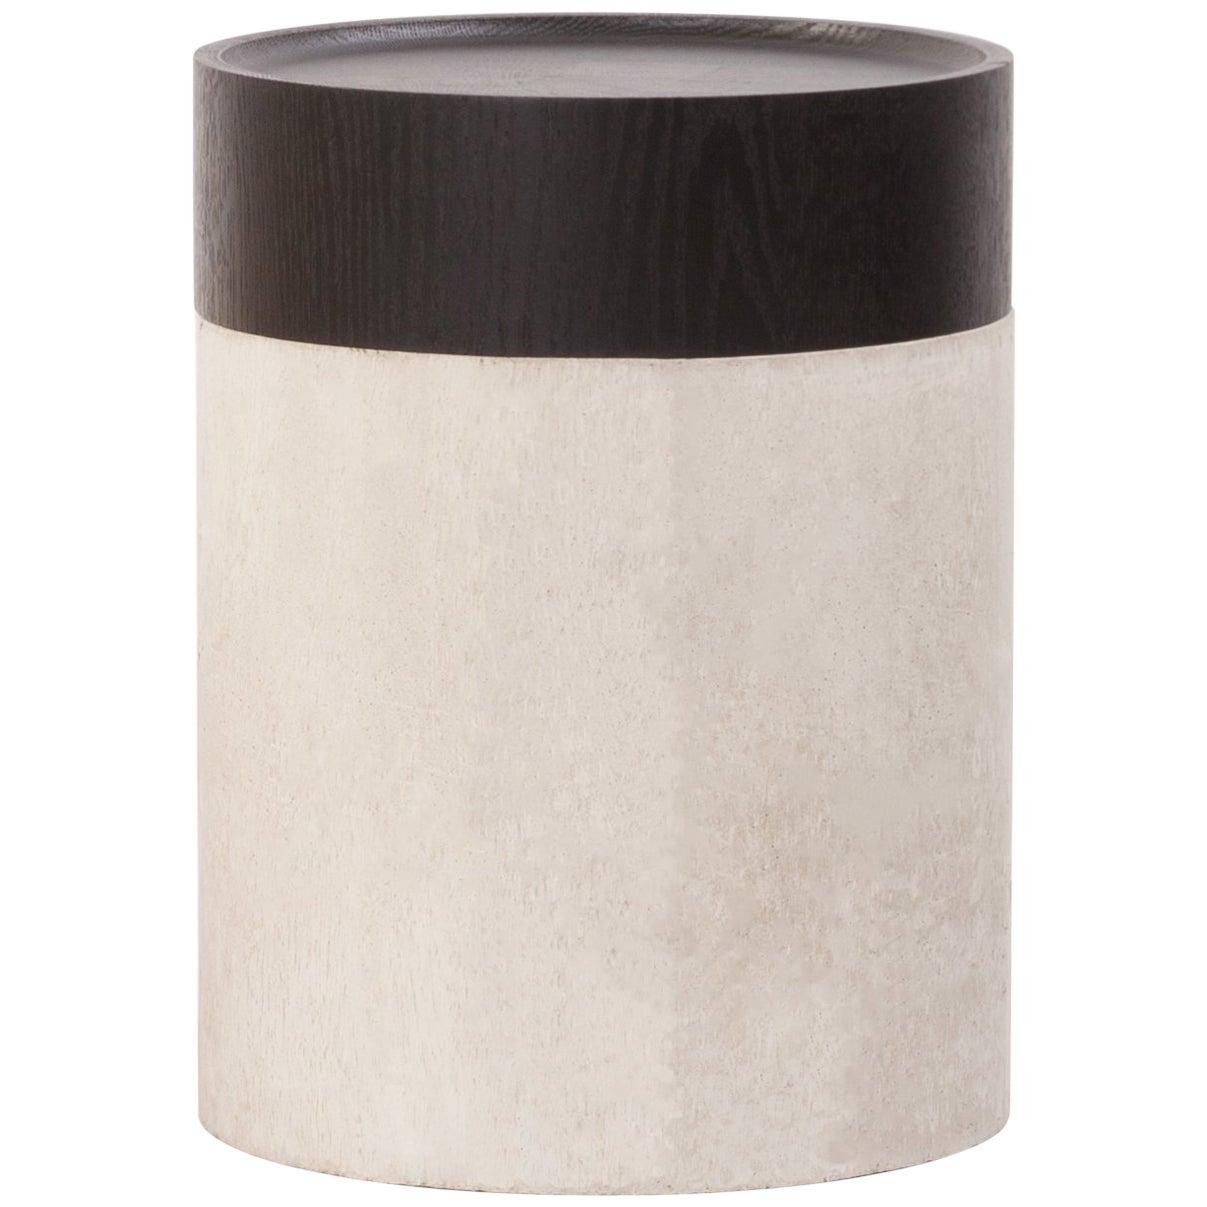 TOTEM Modern Side Table in Concrete & Stained Black Oak by Estudio Persona